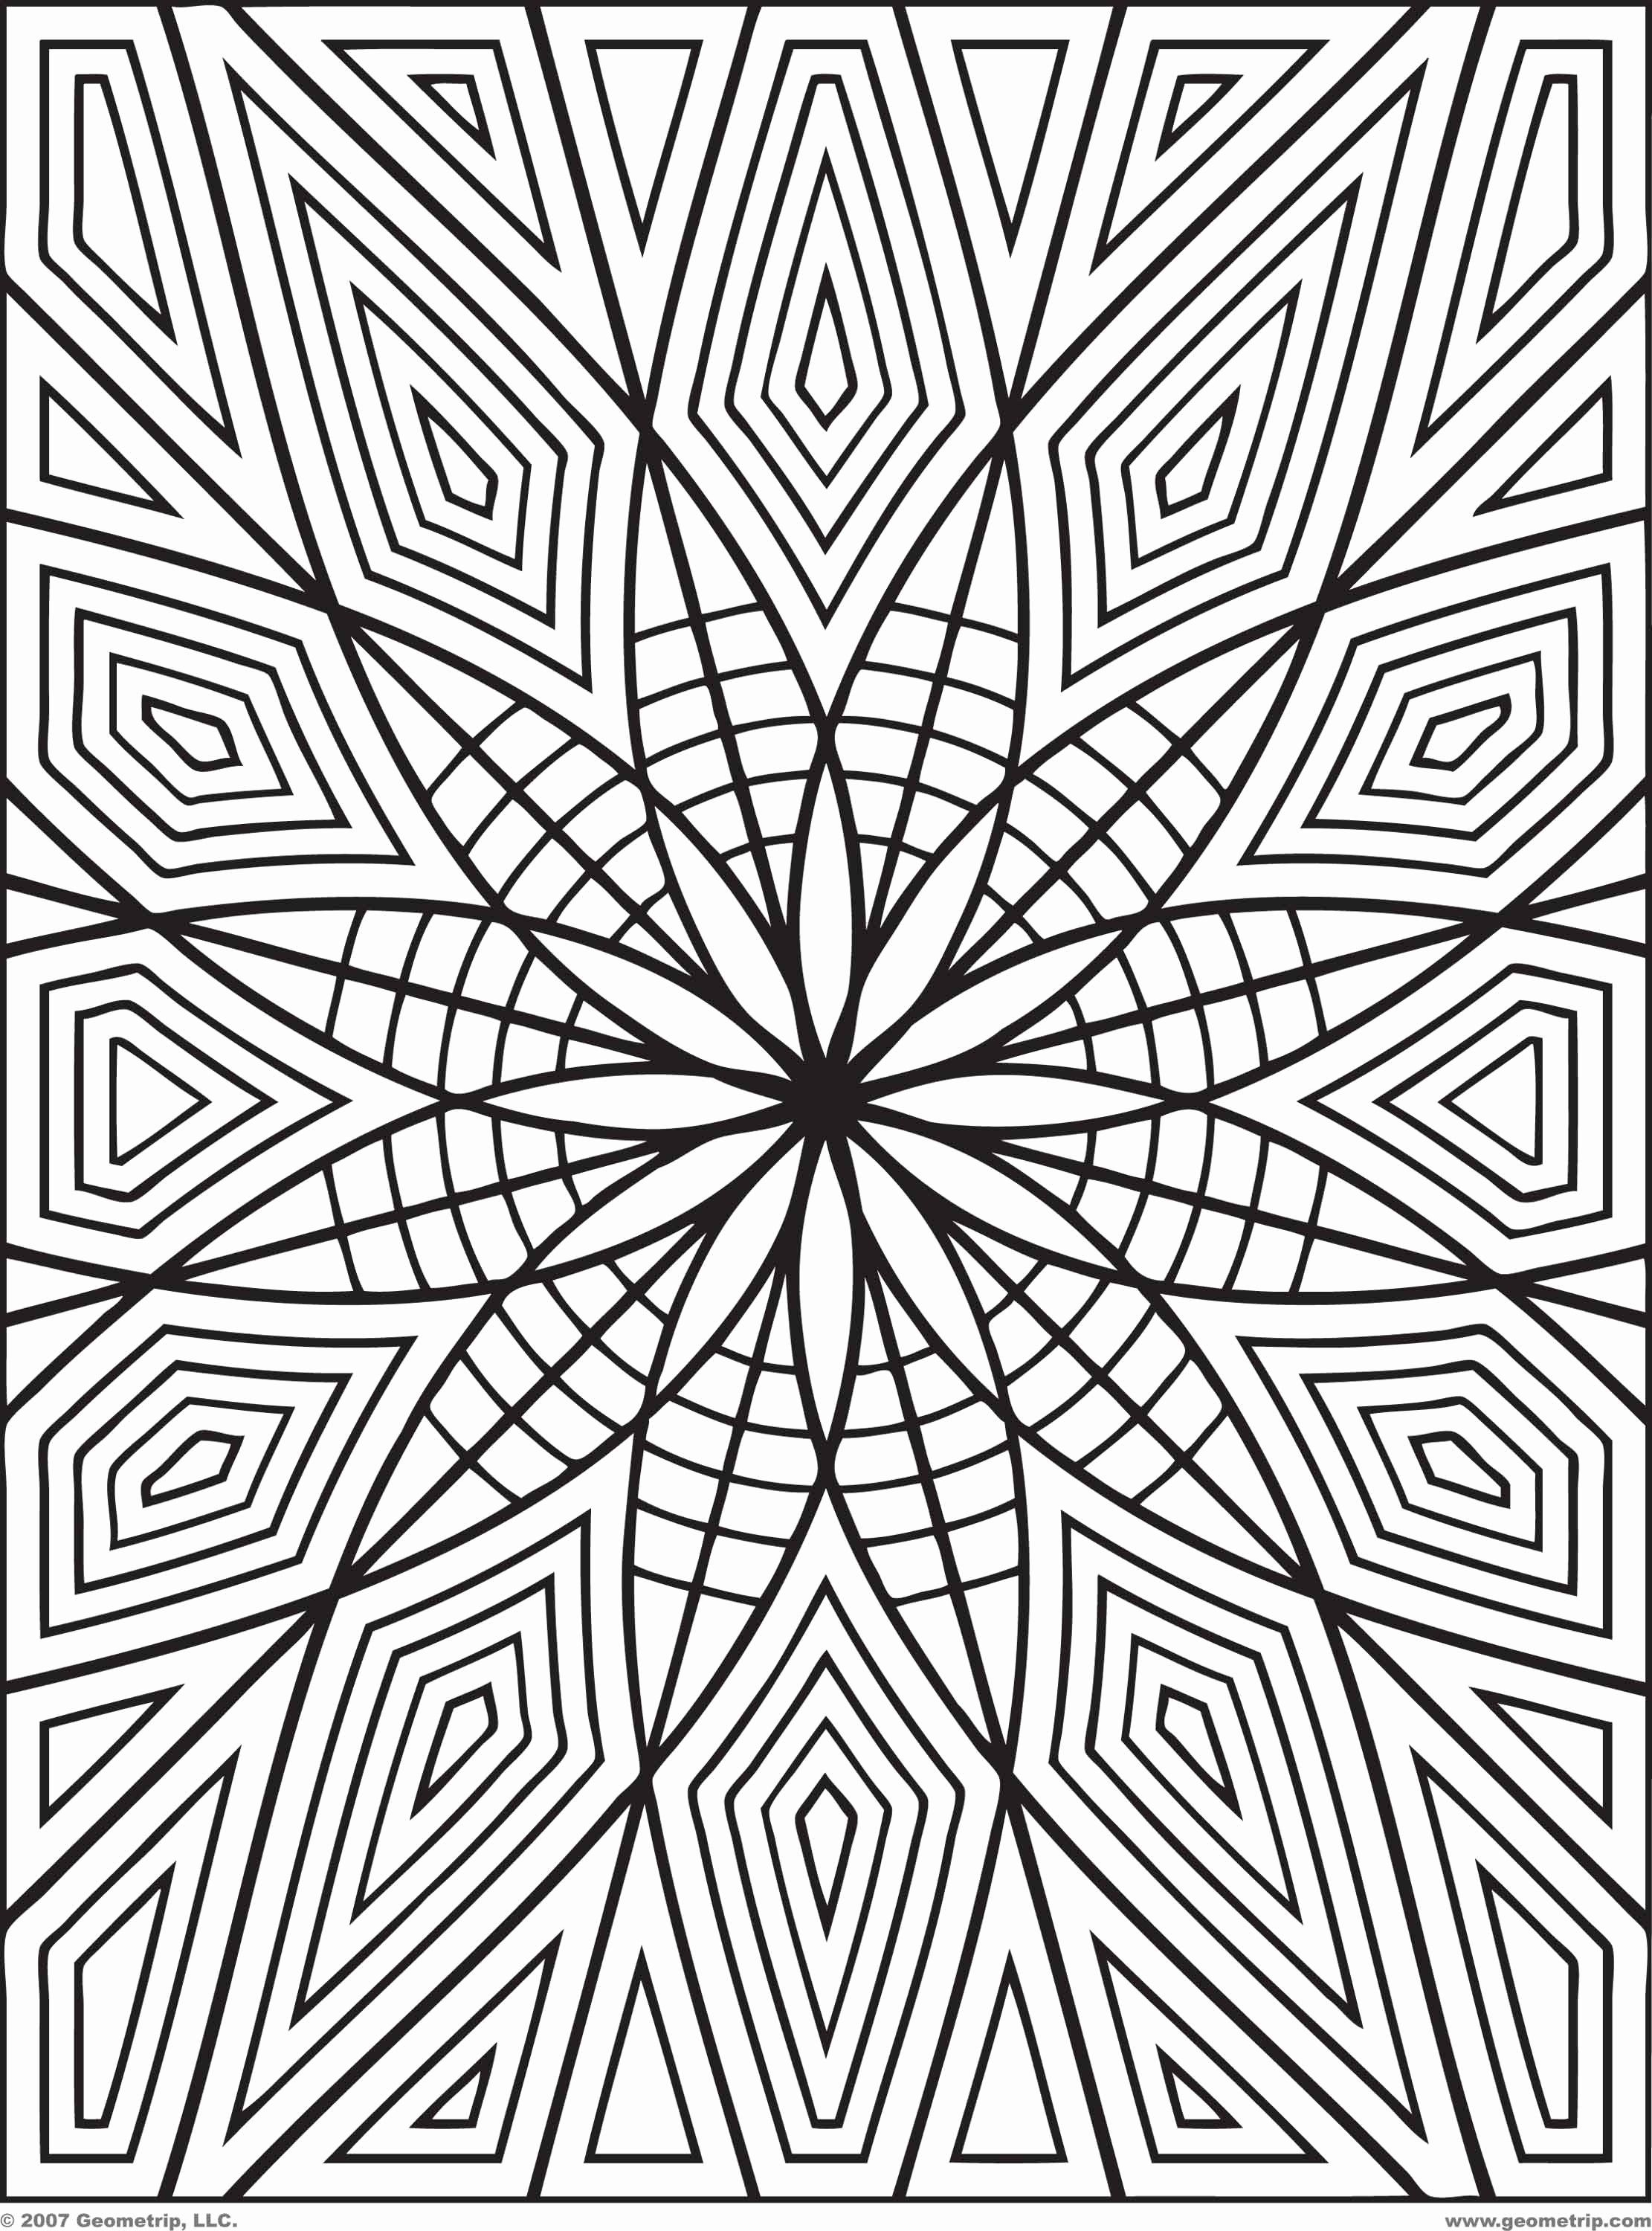 The Quilt Design Coloring Workbook Beautiful Coloring Arts 48 Quilt Pattern Coloring Pa In 2020 Geometric Coloring Pages Pattern Coloring Pages Abstract Coloring Pages